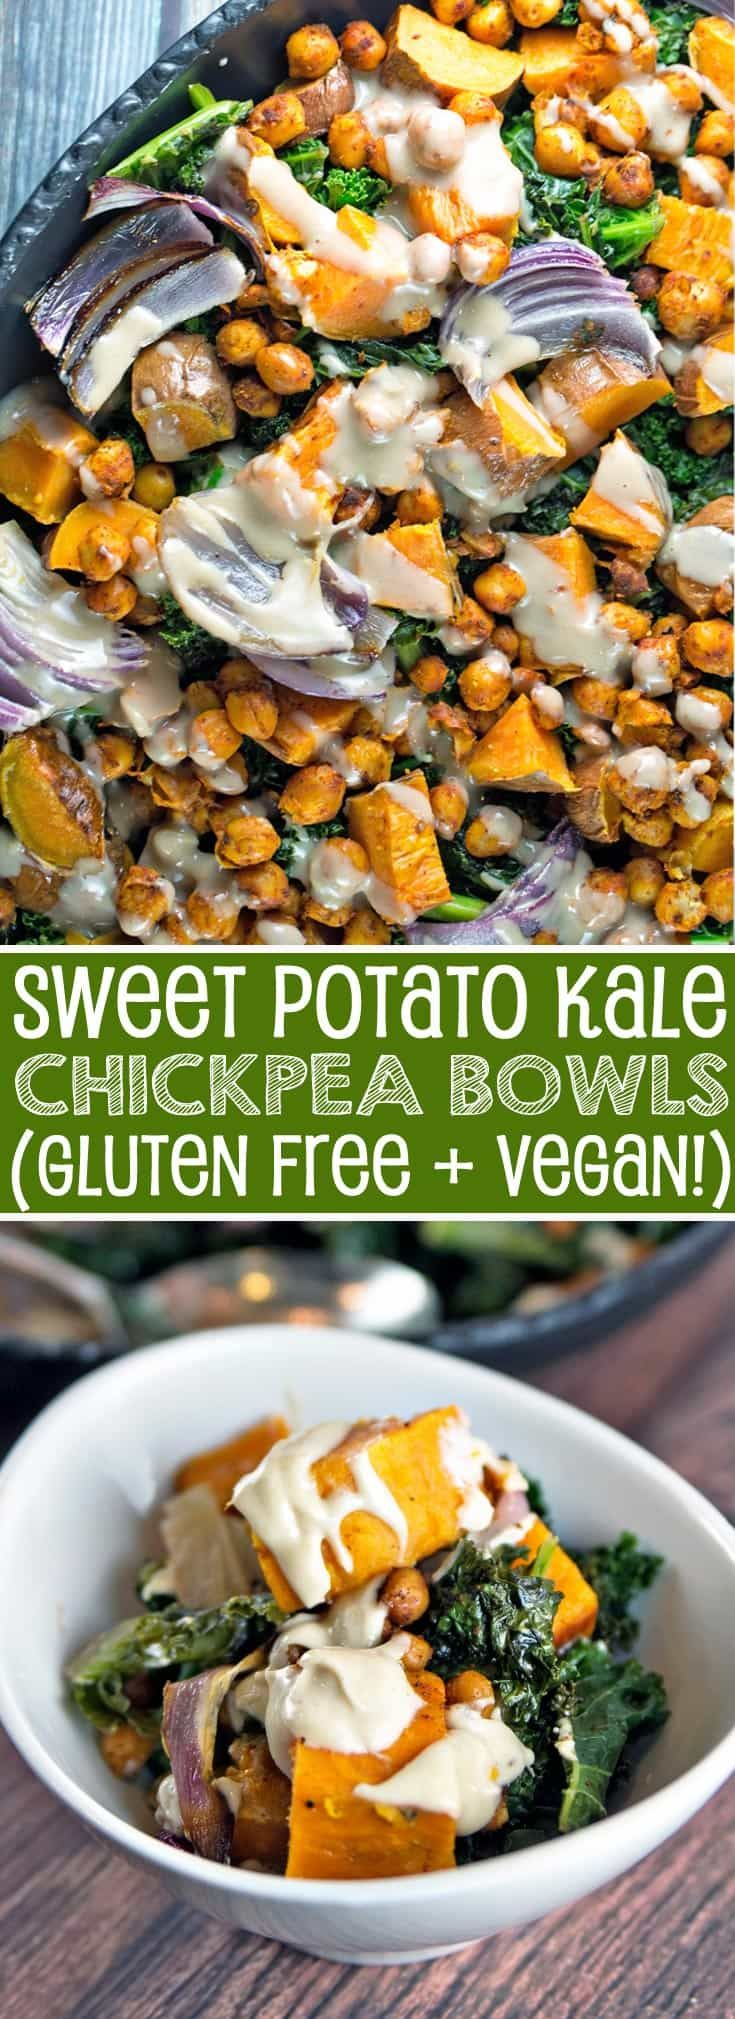 Sweet Potato Kale Chickpea Bowl | Gluten Free | Vegan | Comfort Food | Bunsen Burner Bakery via @bnsnbrnrbakery